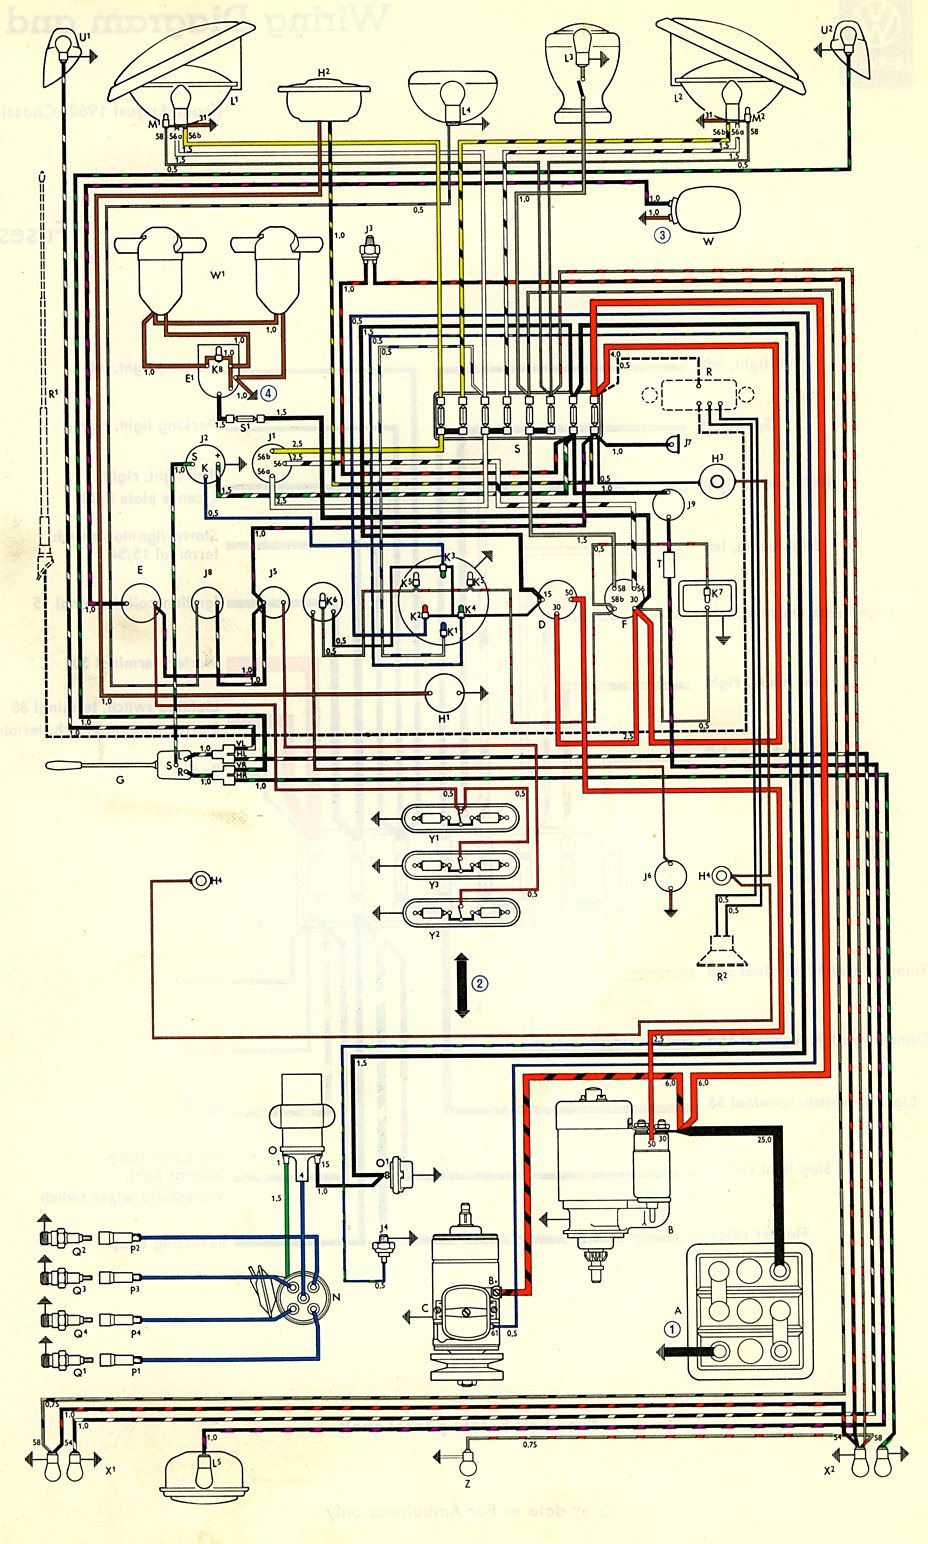 Vw Wiring Diagram Free For You 66 Nova Voltage Regulator 71 Beetle Get Image About 1968 70 Type